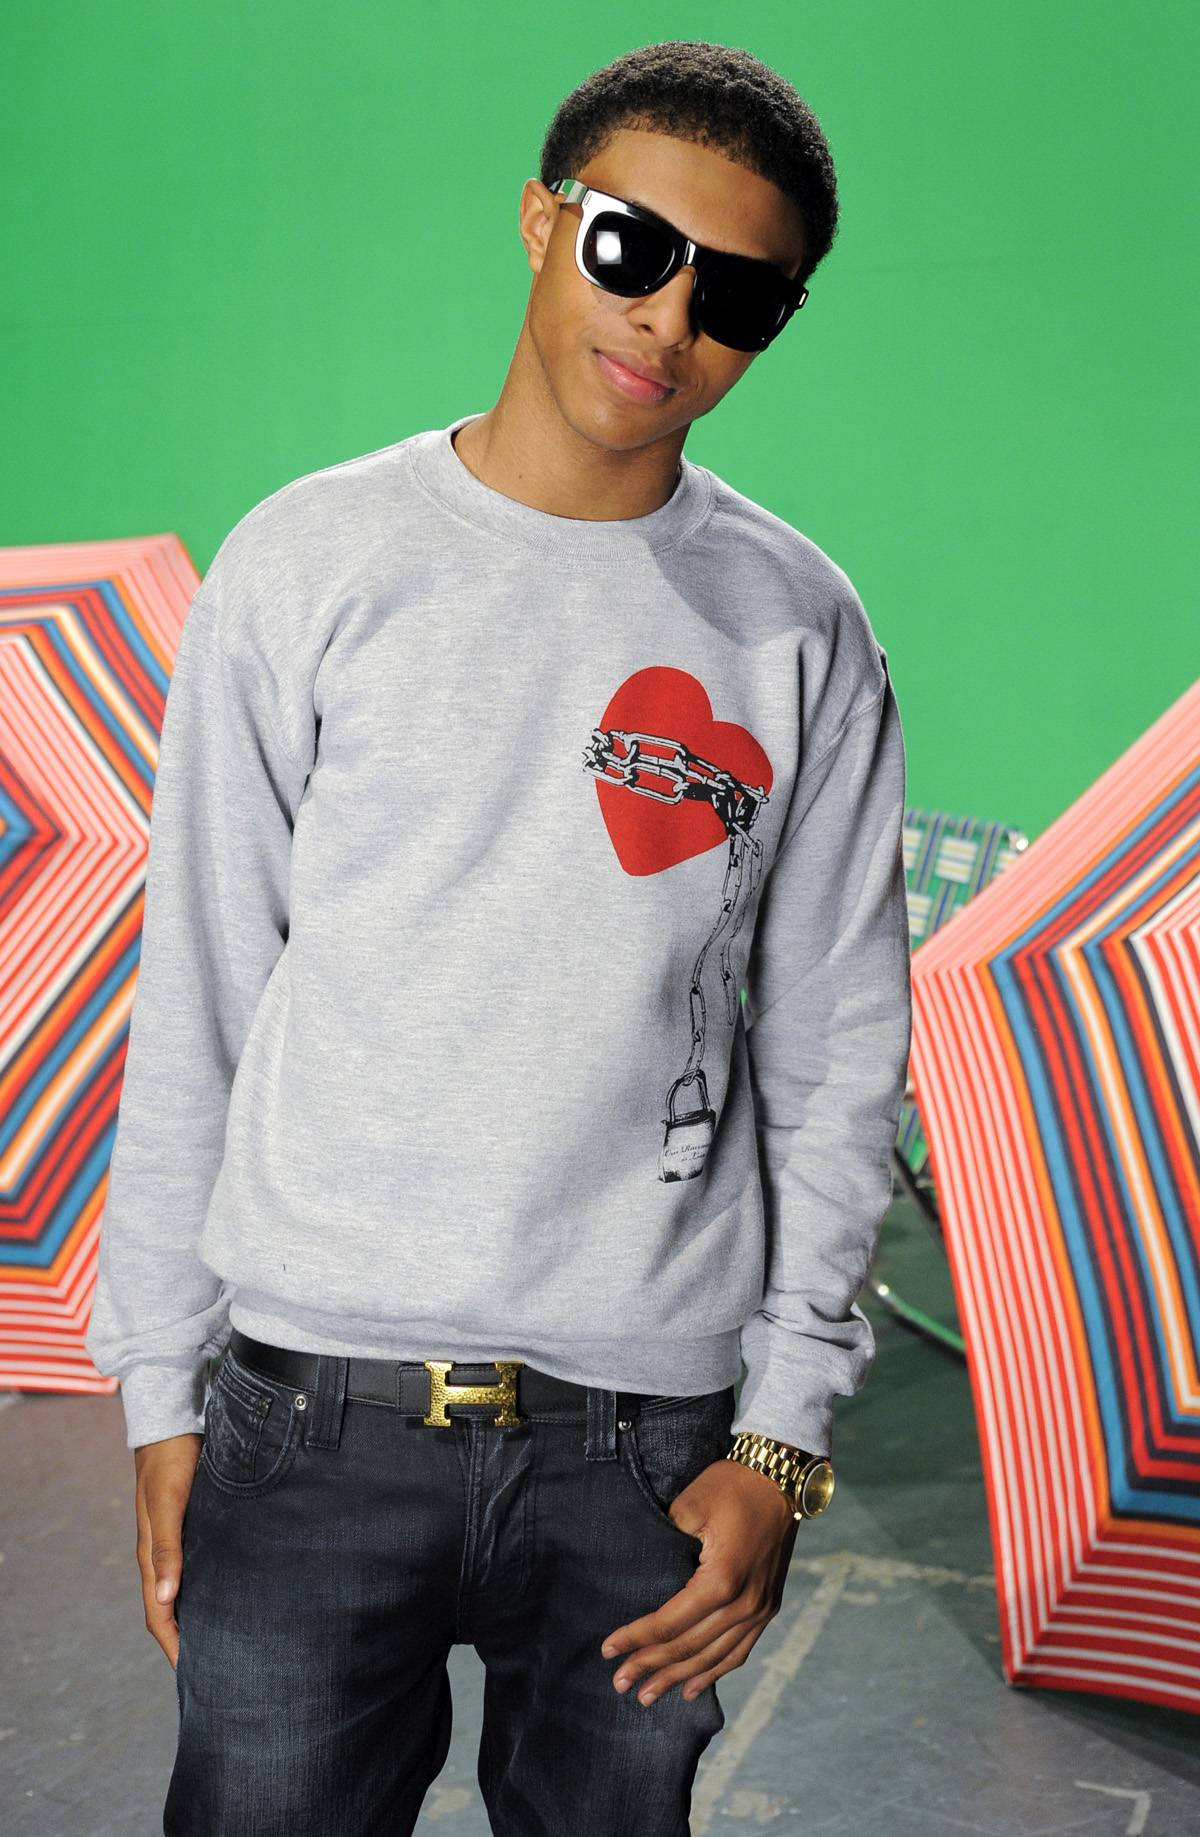 4. Diggy Is a Friend of 106 & Park - 106 always appreciates when Diggy comes through and shows love. Whether he's performing, dropping a new video or co-hosting, it's always a treat when he stops by.(Photo: John Ricard / BET)